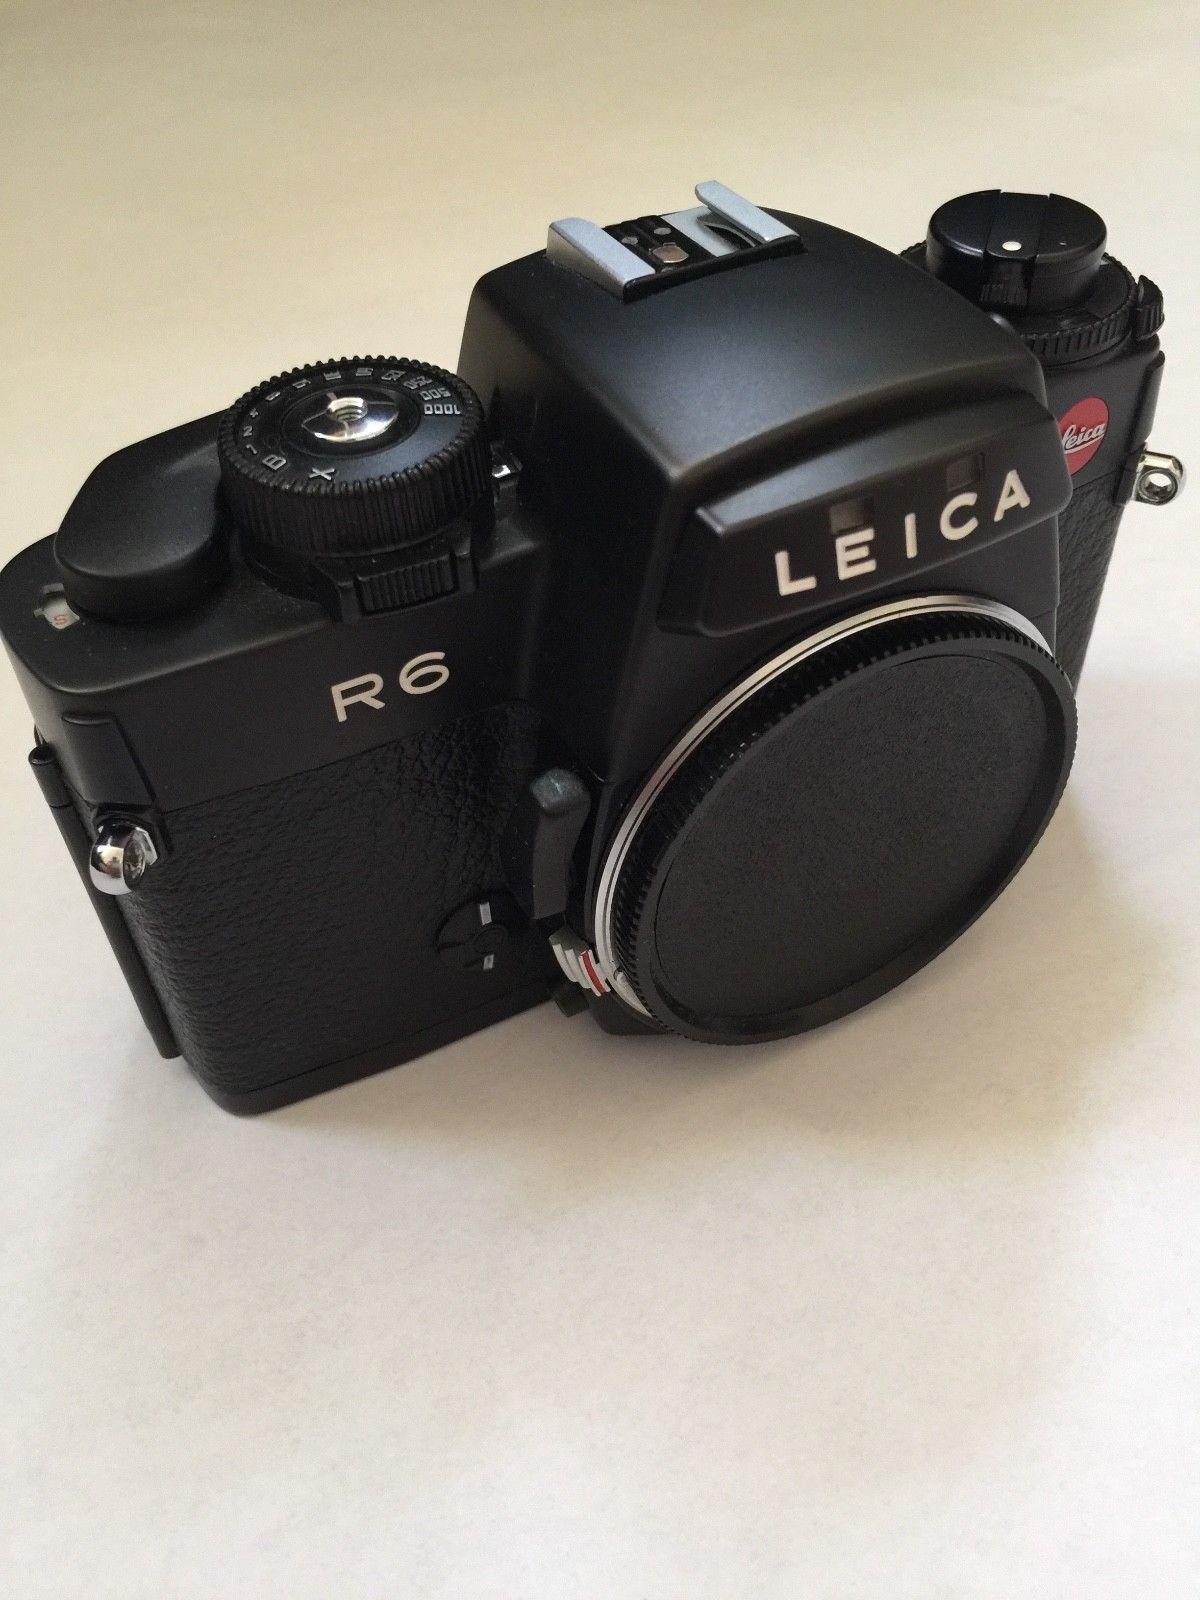 Snazzy Leica Slr Film Camera Serviced Nos Leica Slr Film Camera Serviced Nos Film Photography Leica Film Camera Models Leica Film Camera Wiki